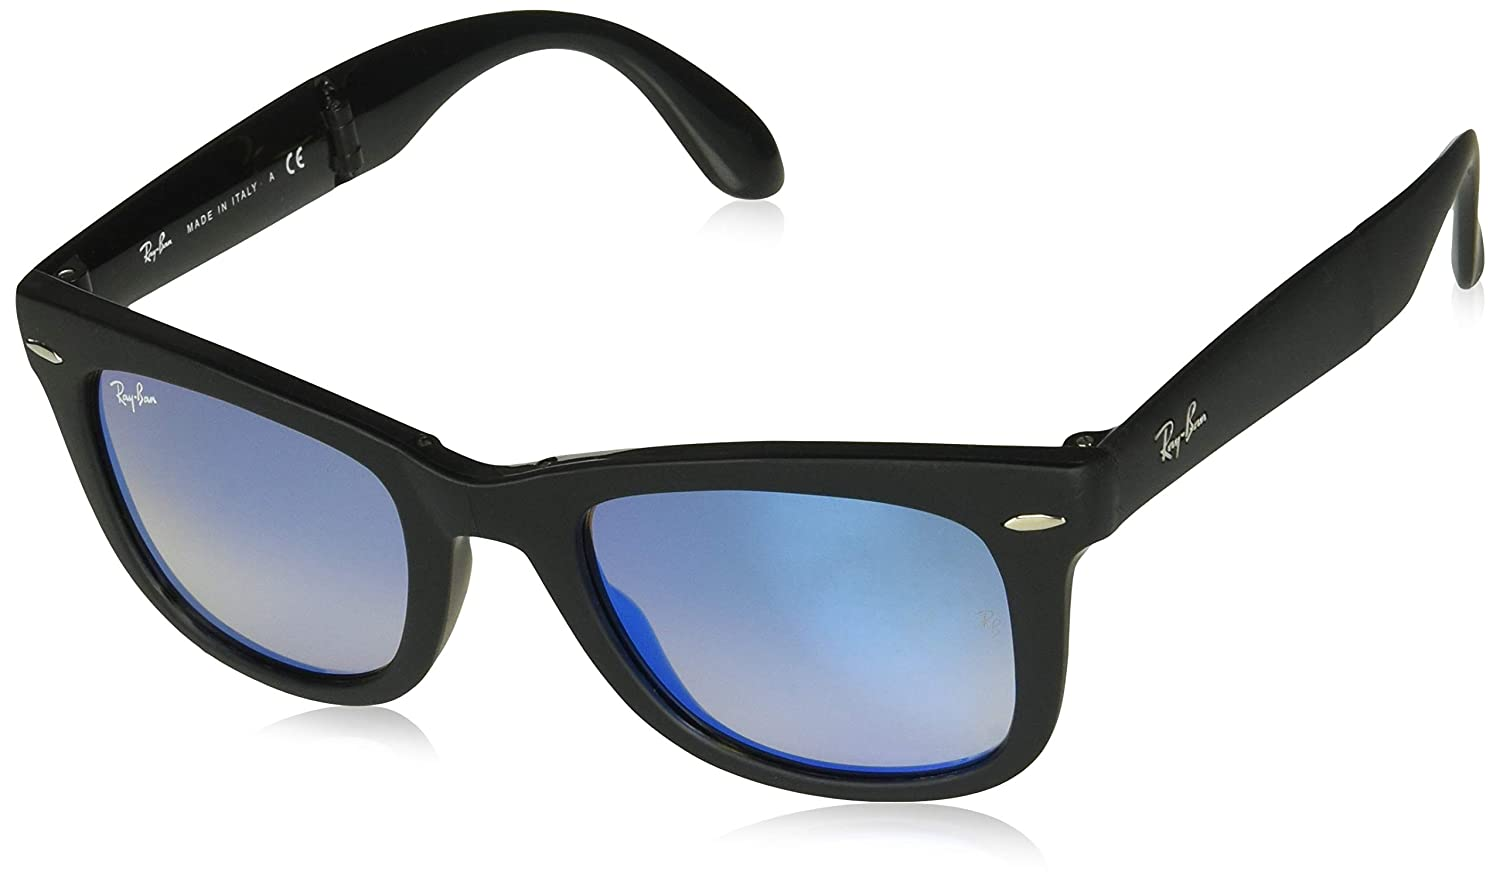 7c34743db1d Amazon.com  Ray-Ban Men s Folding Wayfarer Sunglasses